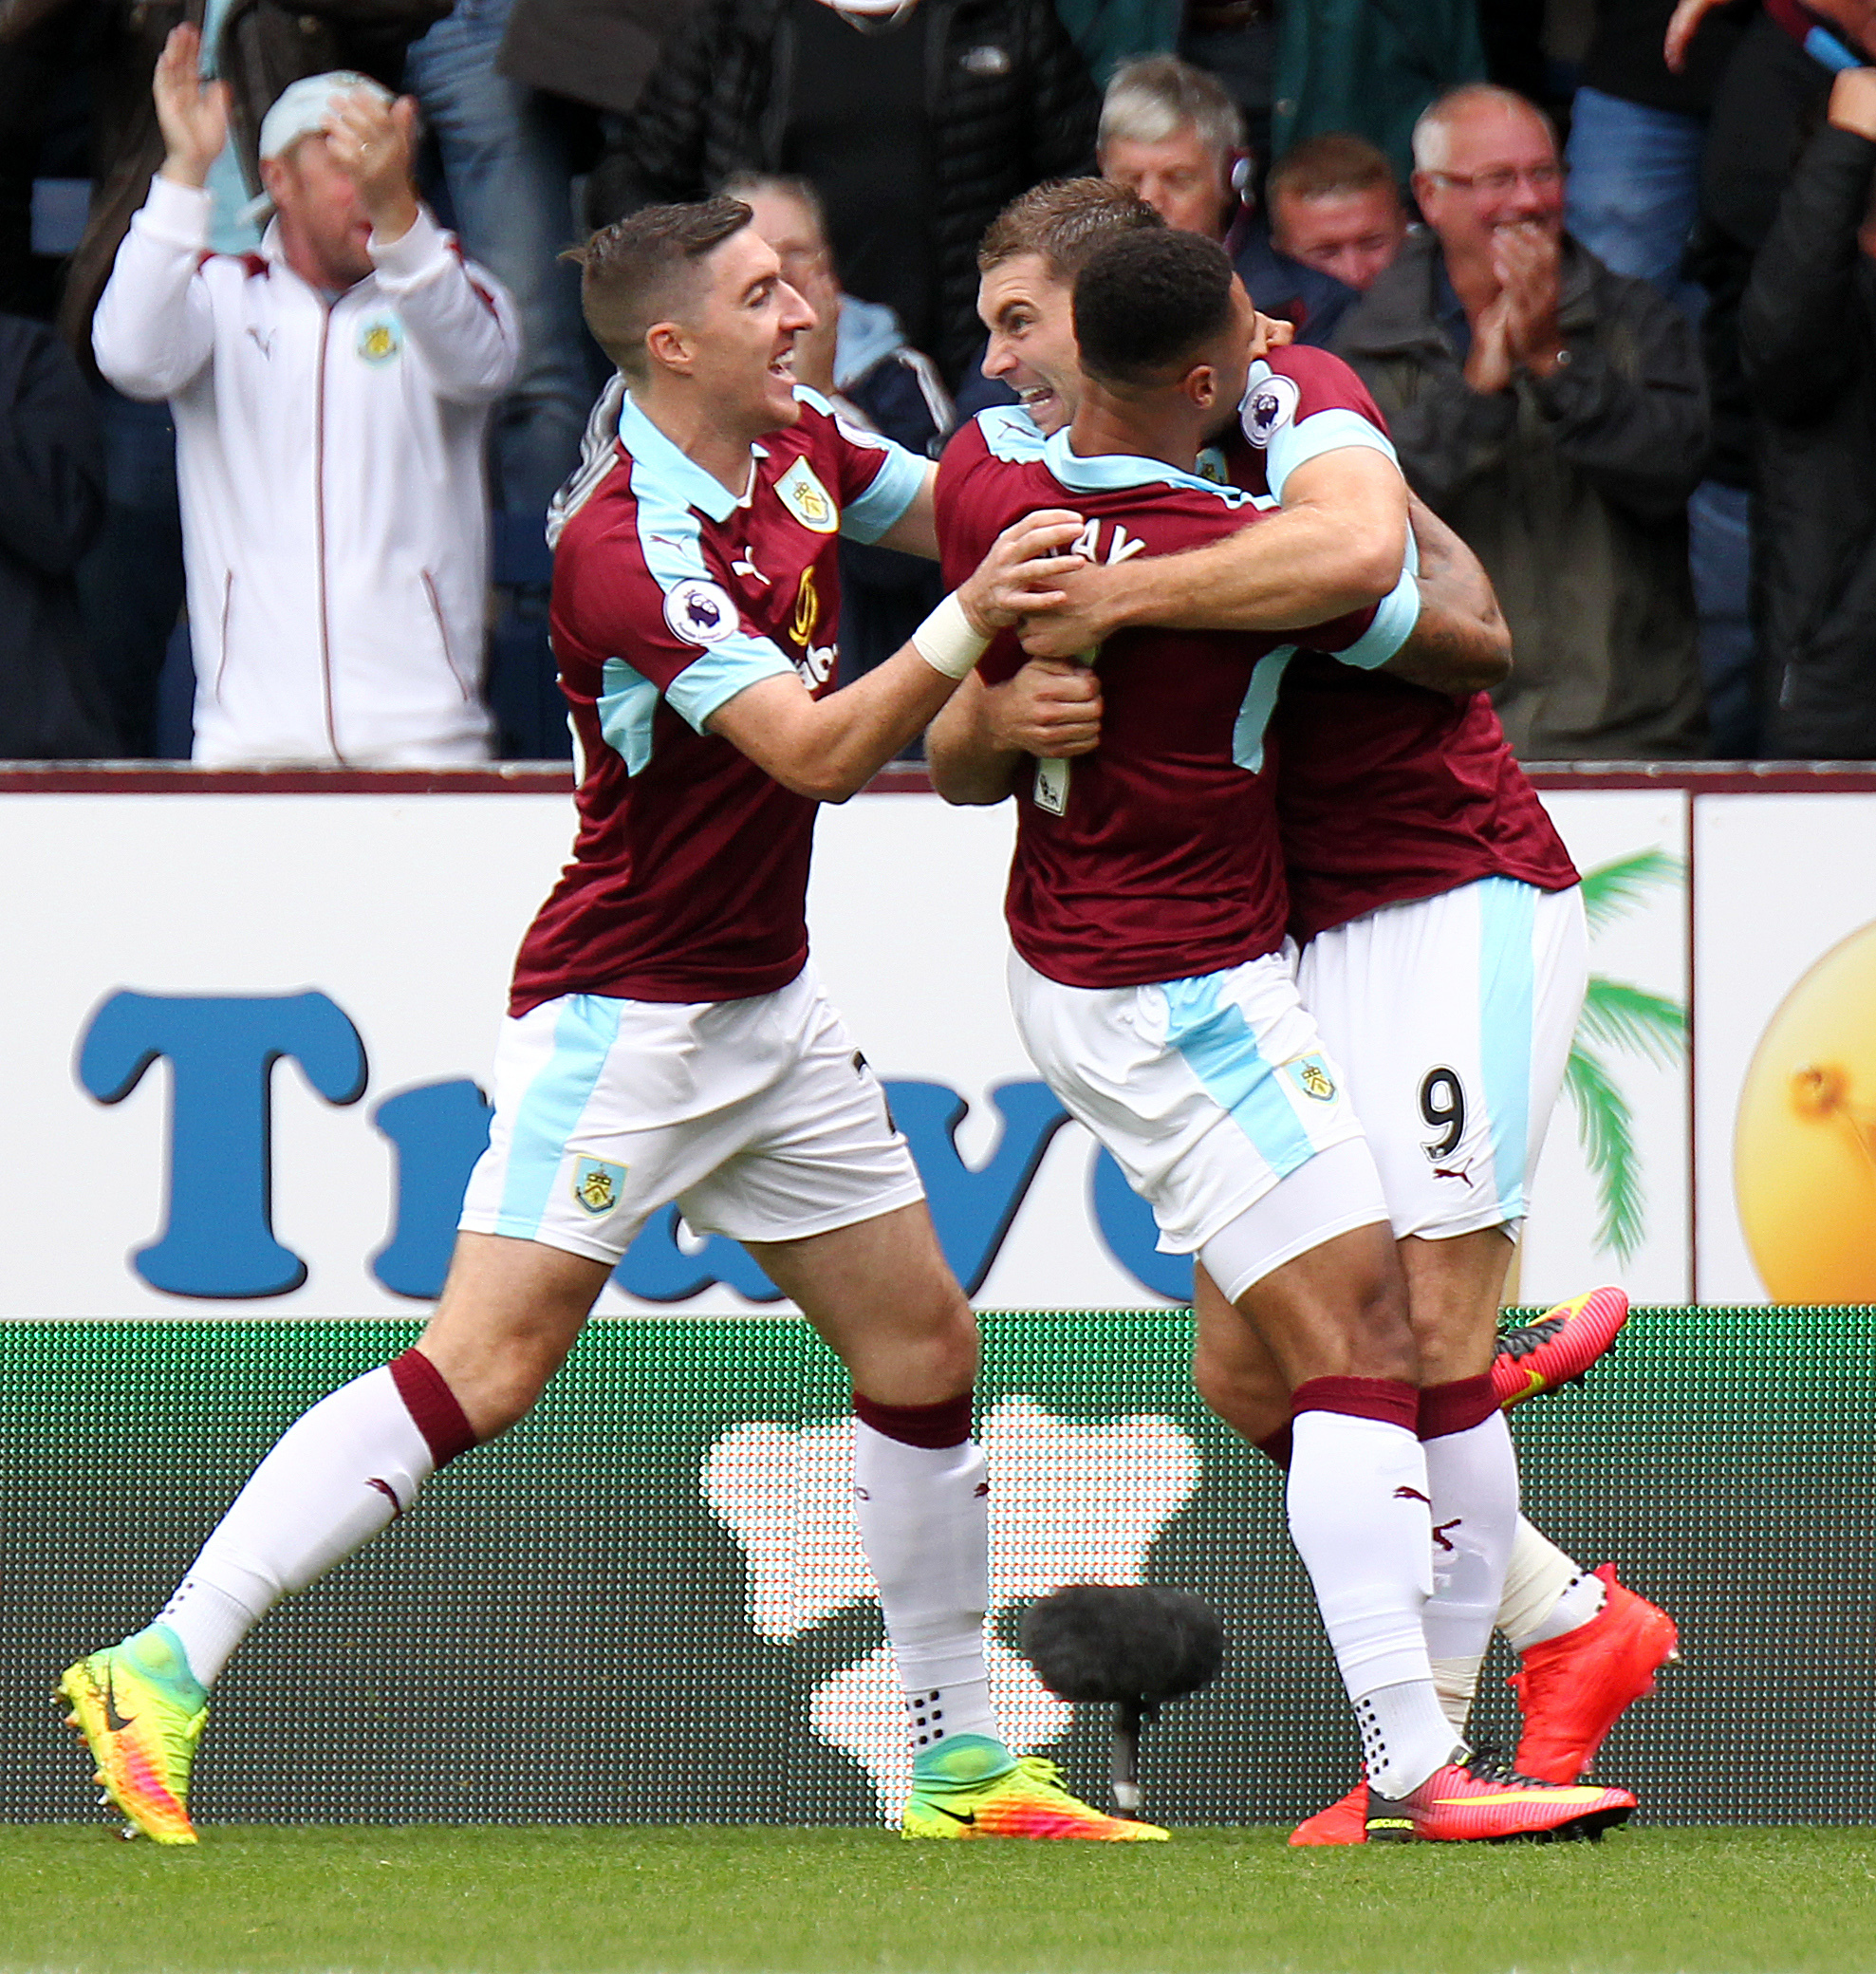 Goals from Sam Vokes and Andre Gray helped Burnley to beat Liverpool at Turf Moor last season